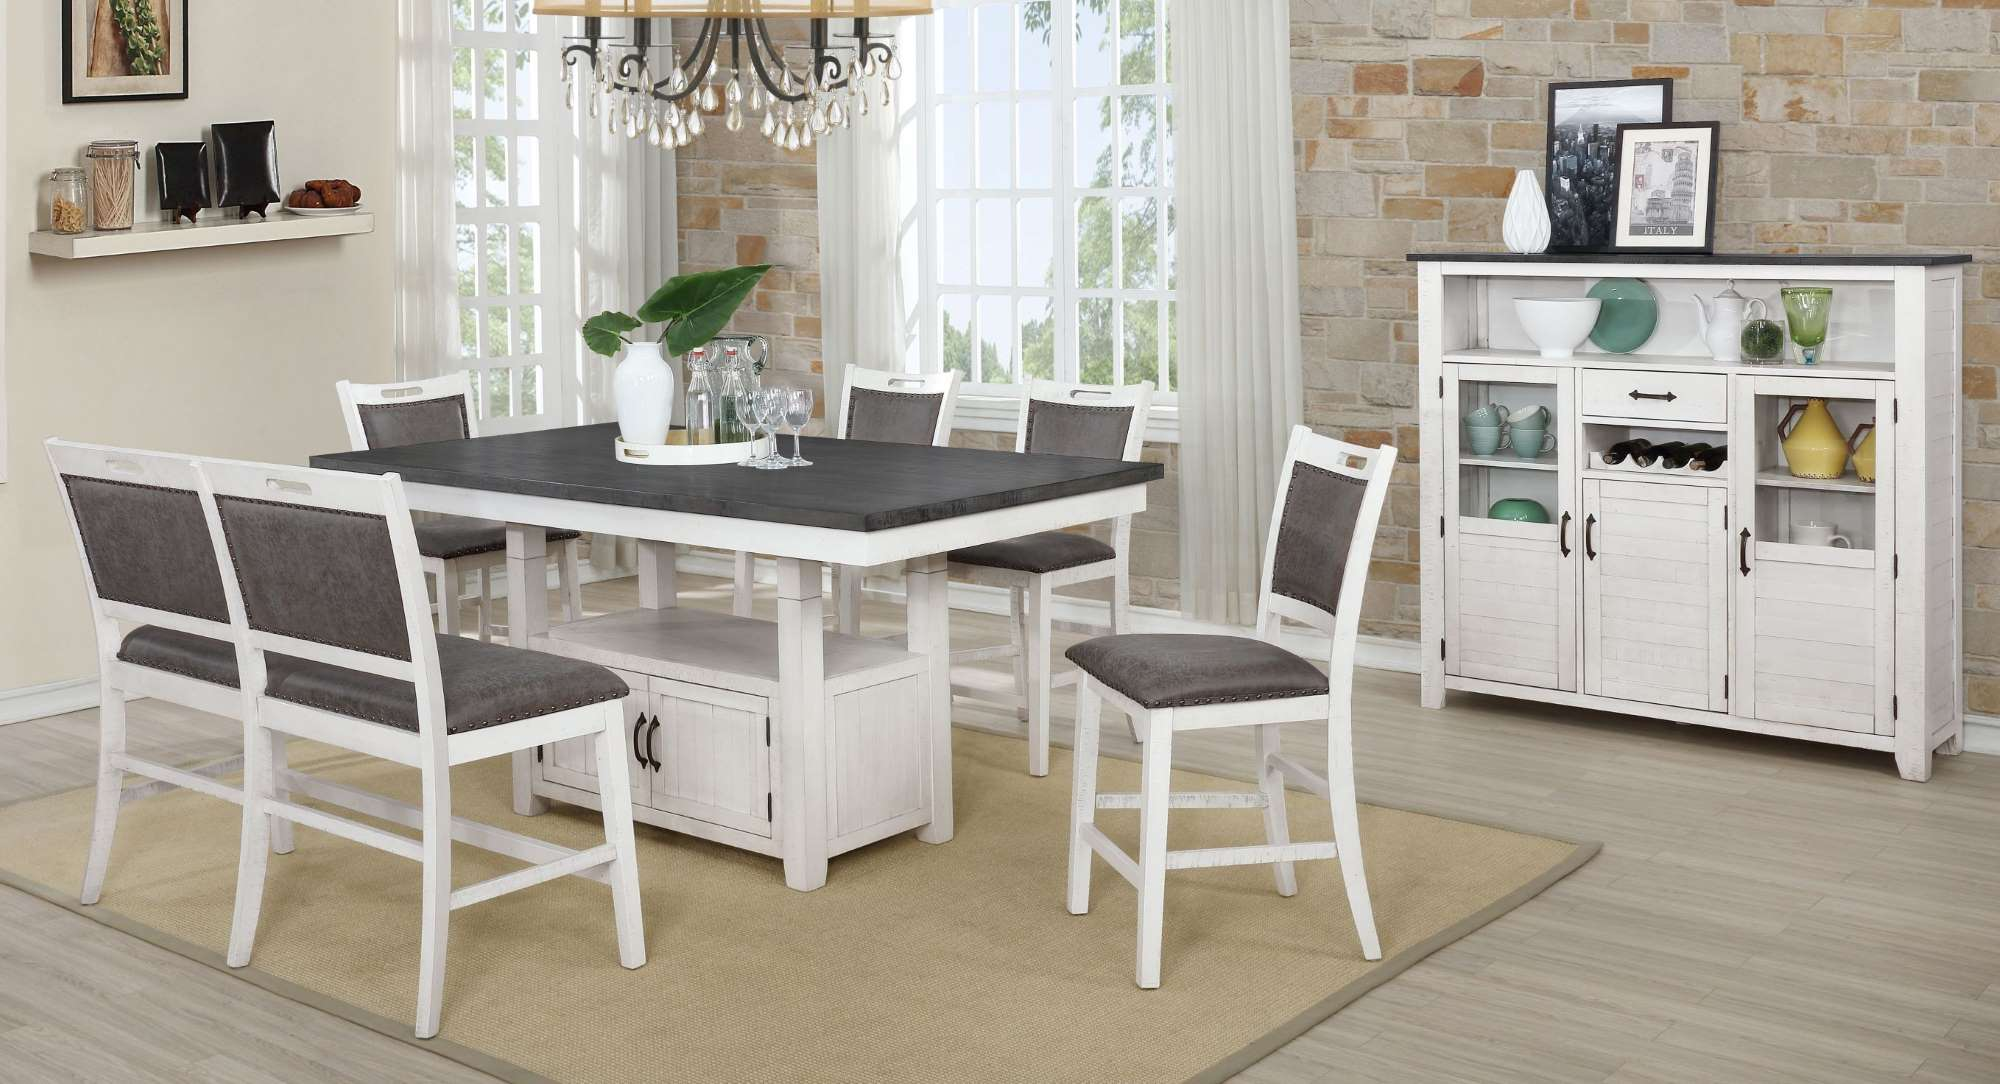 1852 Jonah Counter Height Tables 4 Stools + Bench $979.99